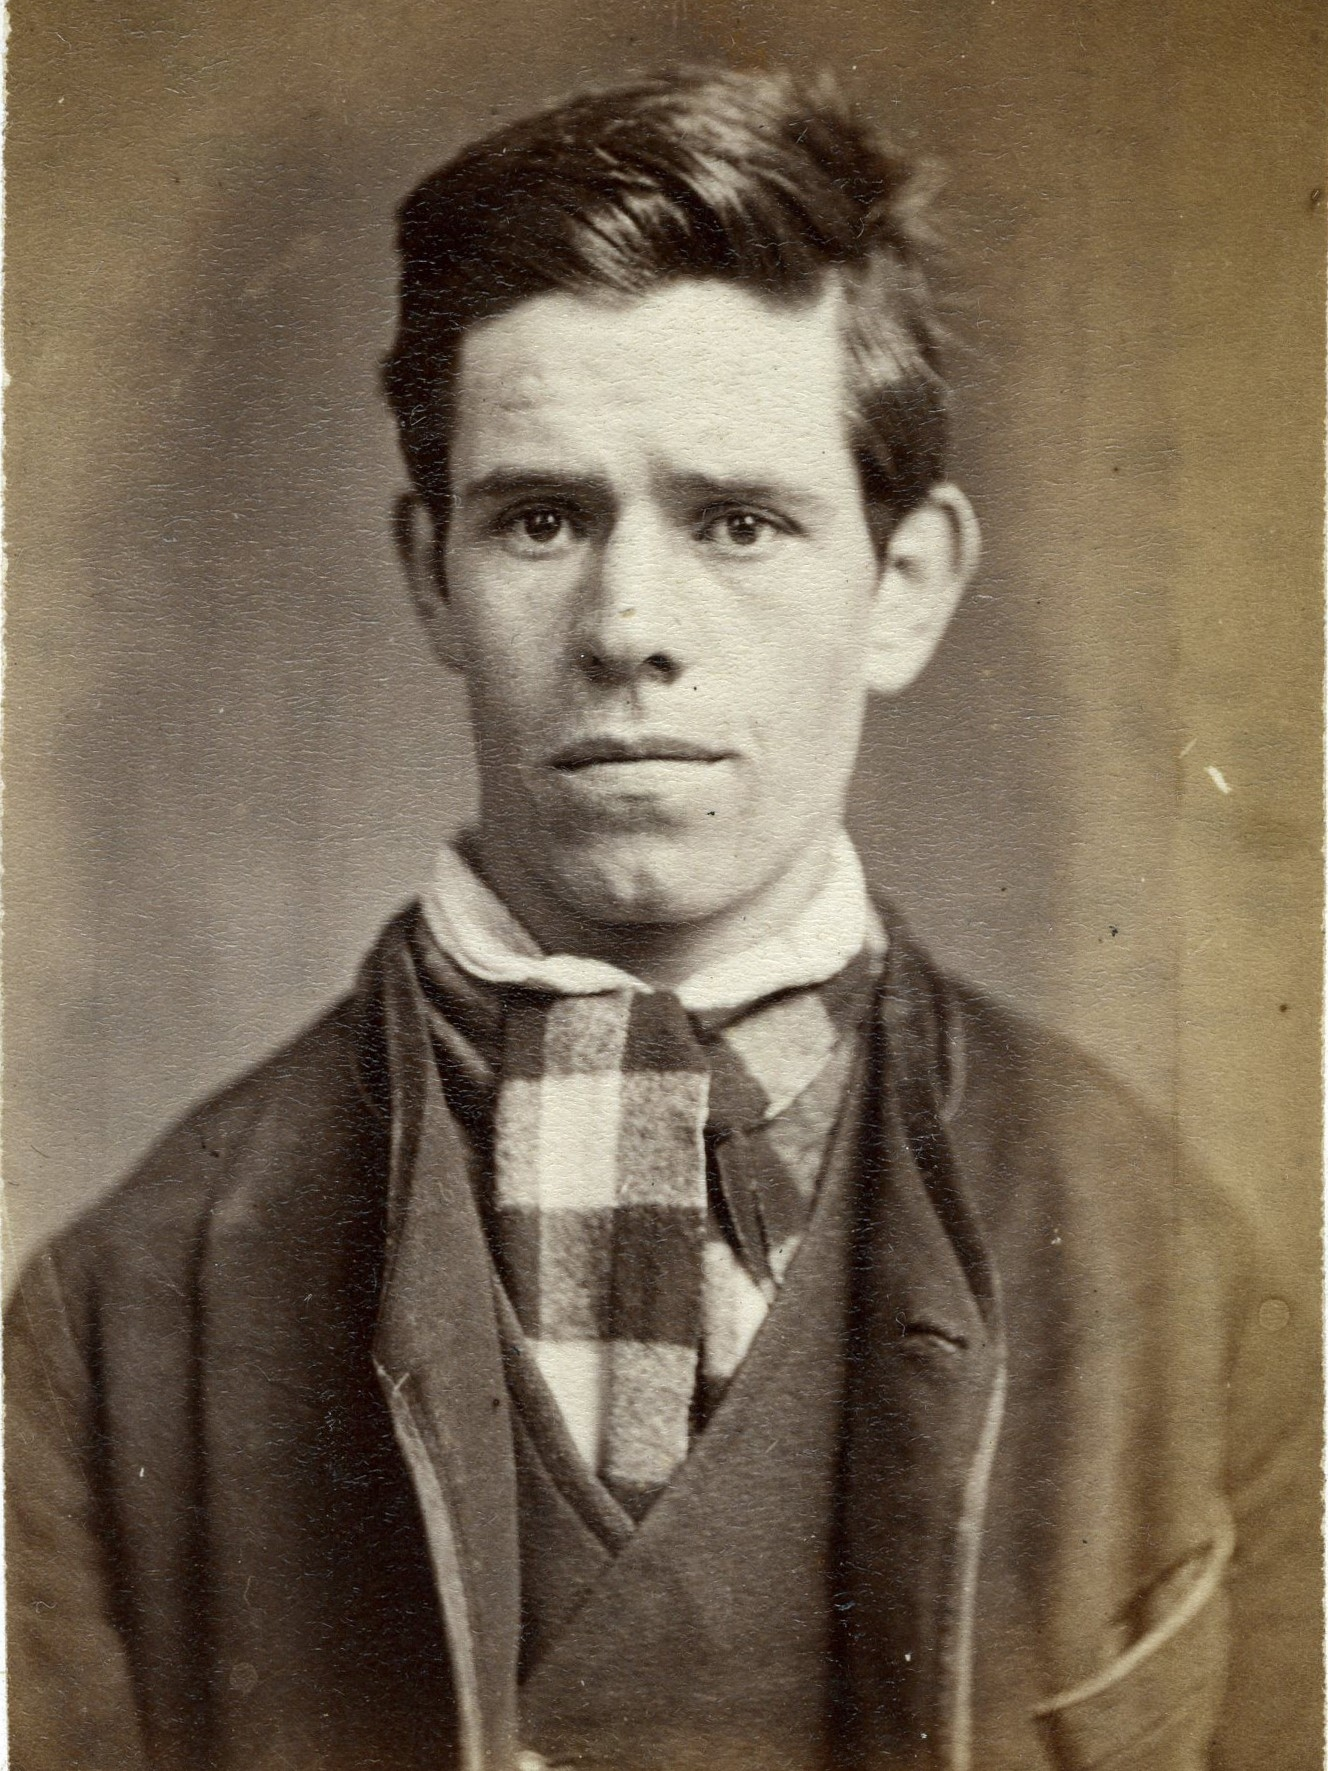 Portrait of young man with checkered neck tie.